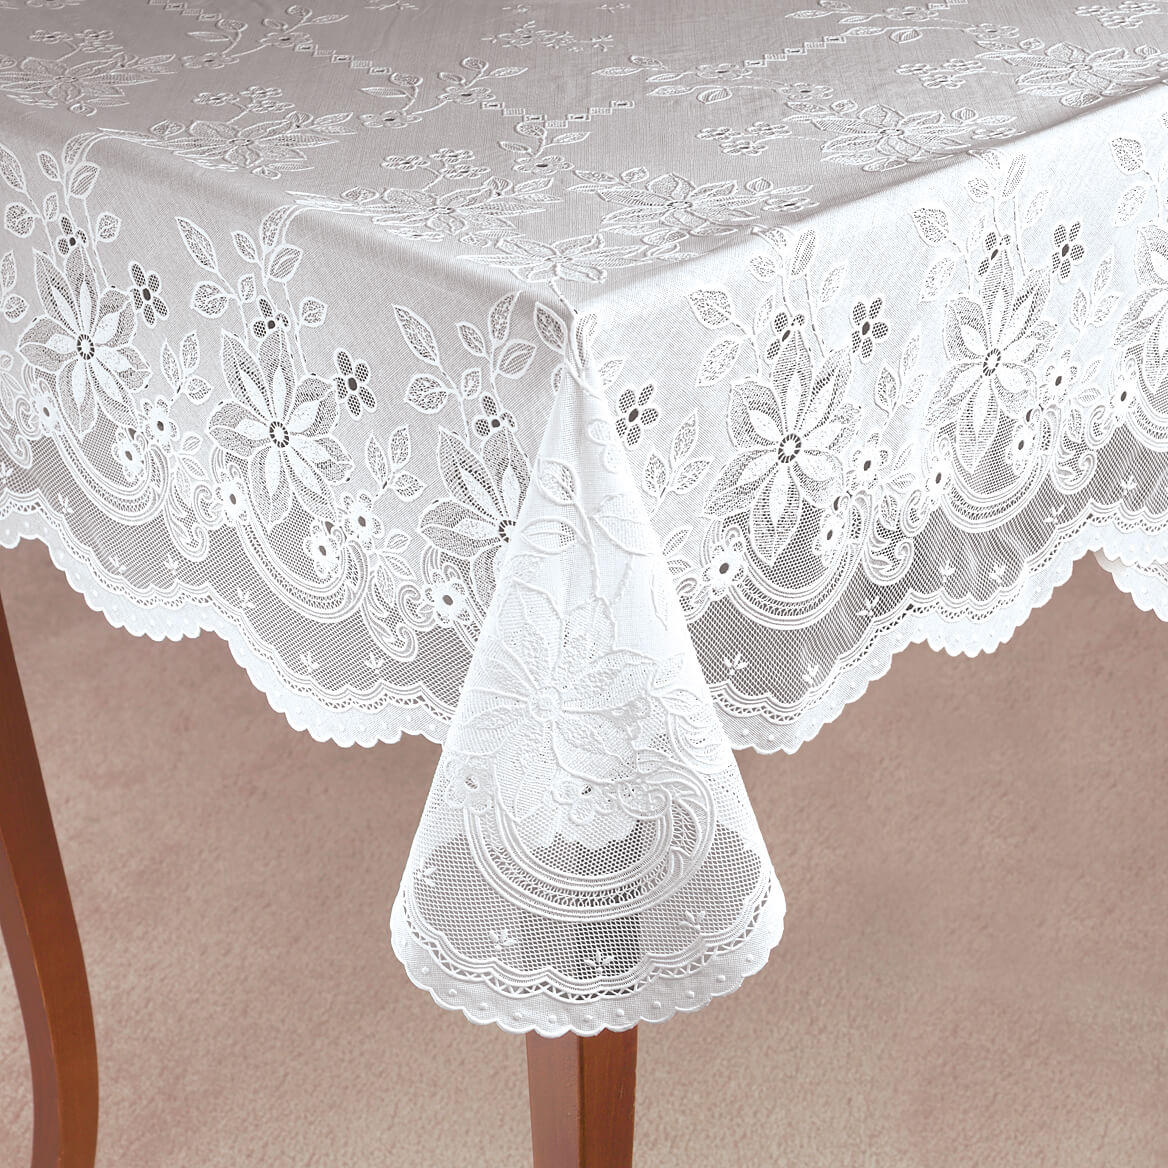 Vinyl Lace Tablecloth Vinyl Lace Tablecloth Walter Drake